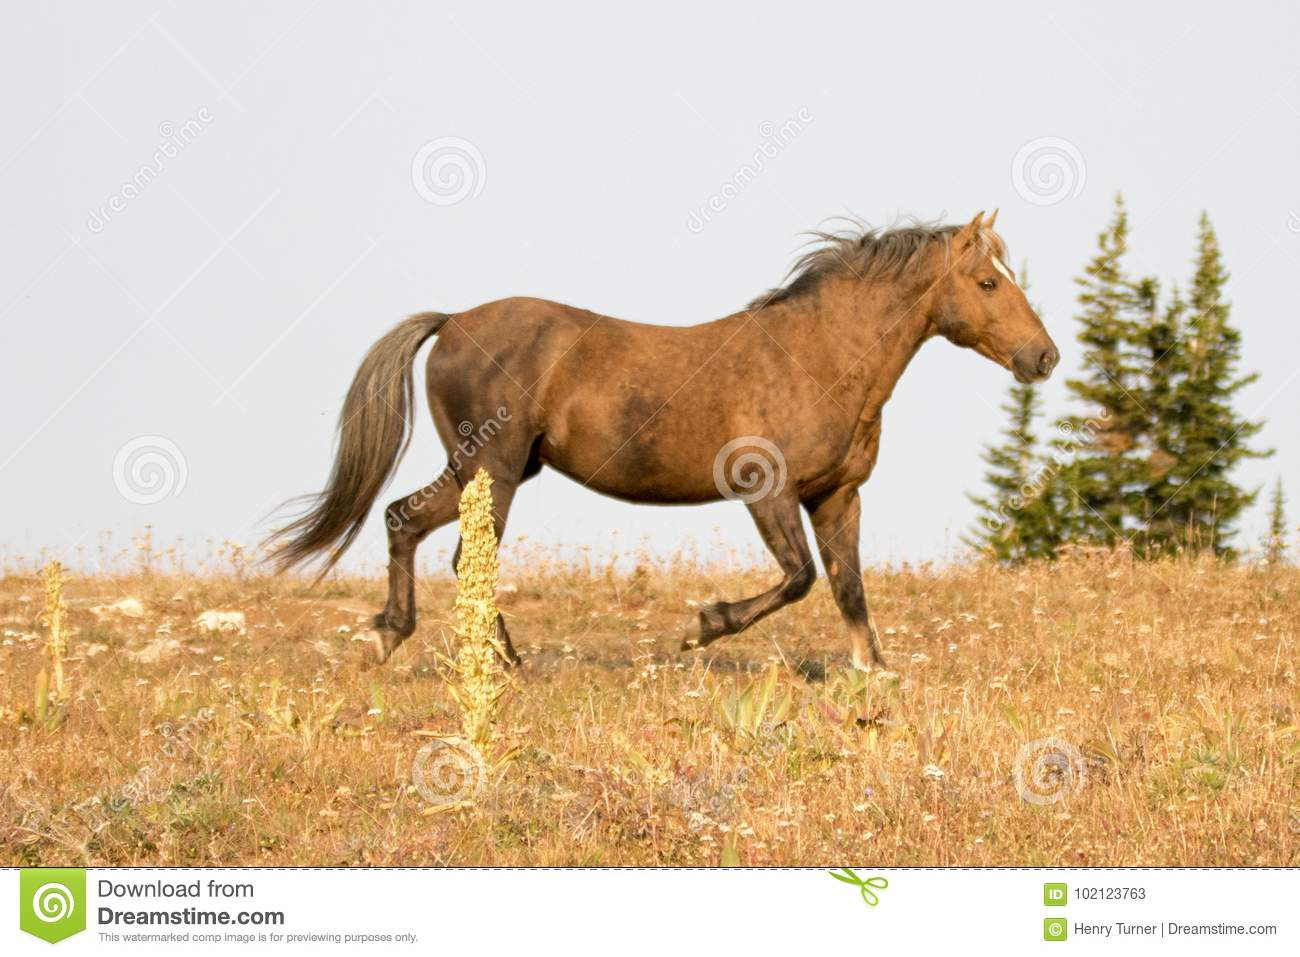 Sooty Palomino Stallion Wild Horse Running On A Ridge In The Pryor Mountains Wild Horse Range In Montana Usa Stock Image Image Of Sorrel Coyote 102123763